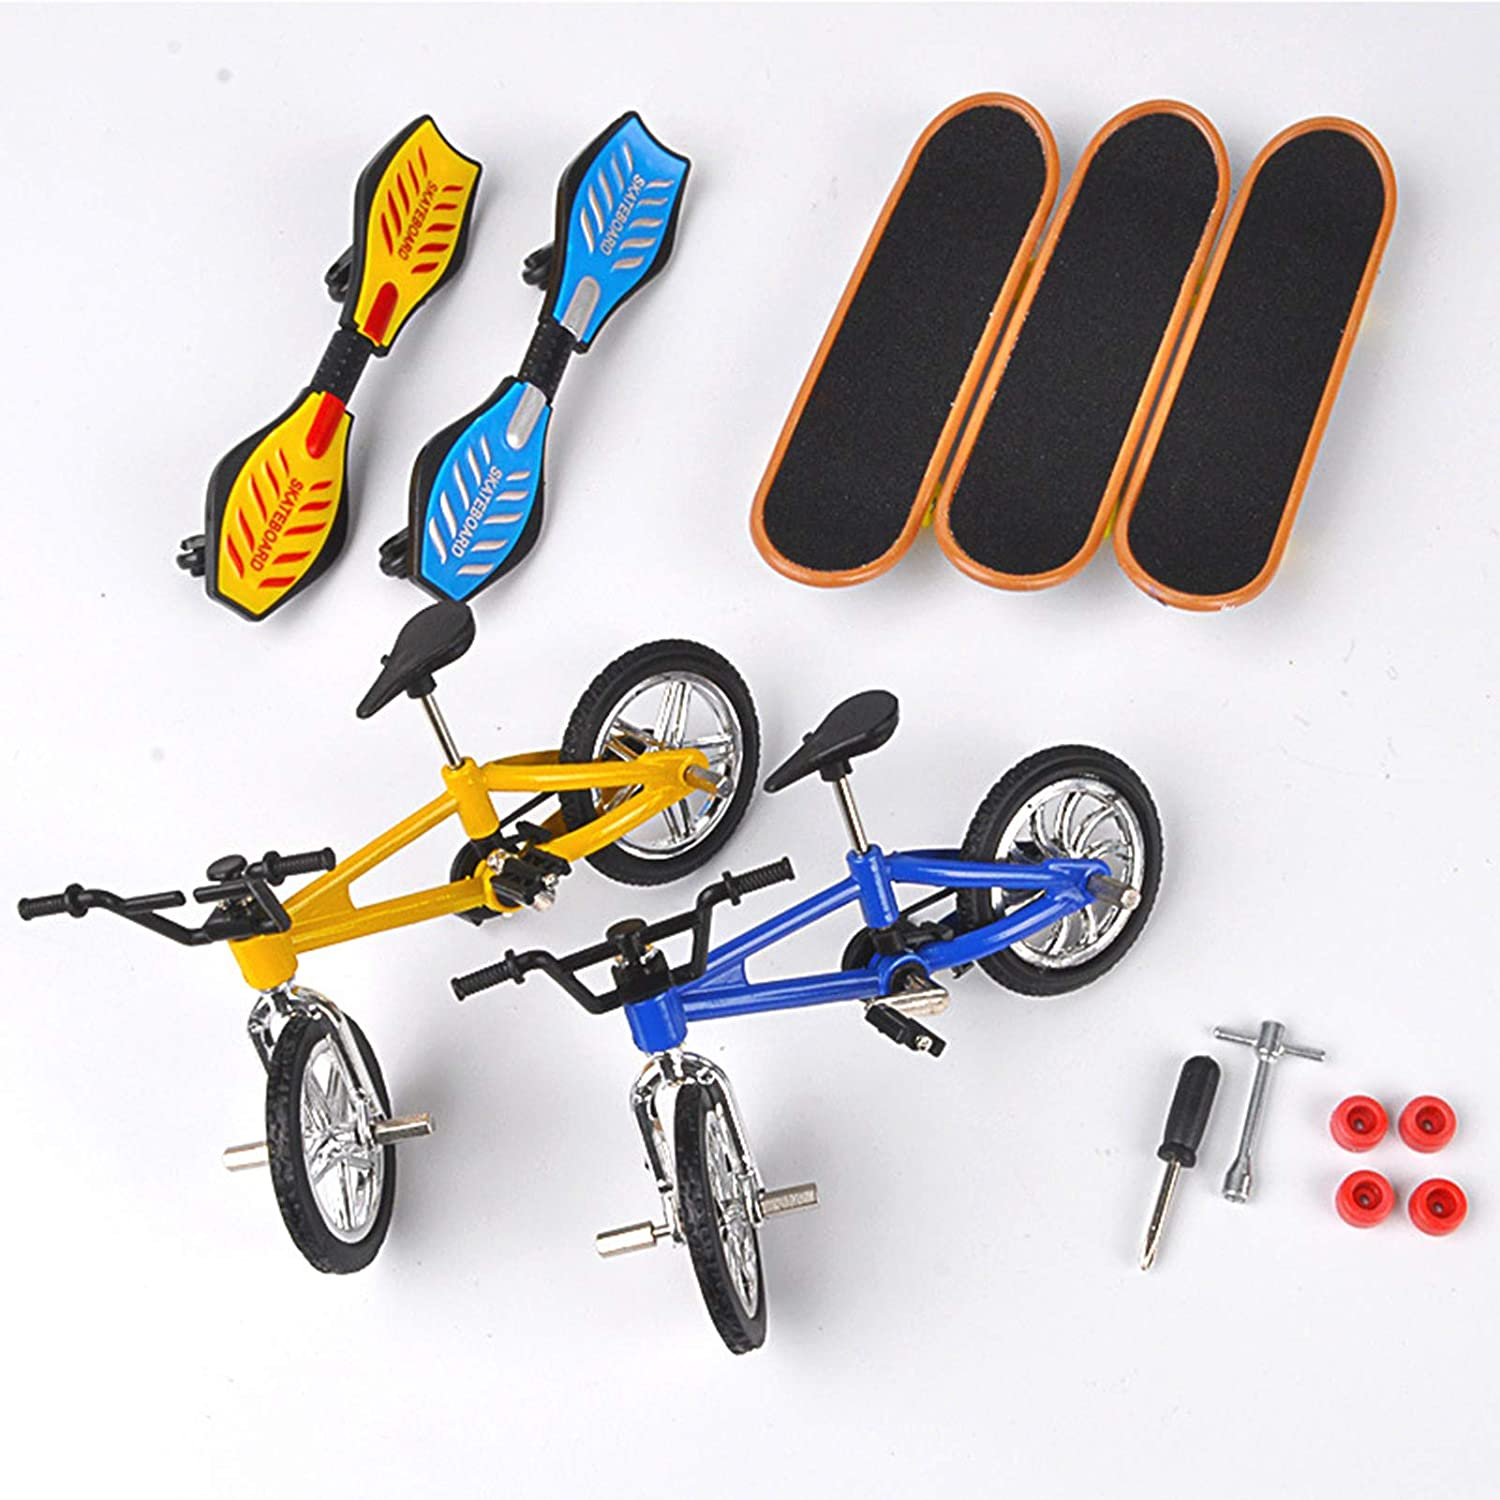 BARMI Professional Children Mini Courier shipping free shipping Ranking TOP15 Bicycle Fi Skateboard Assembled